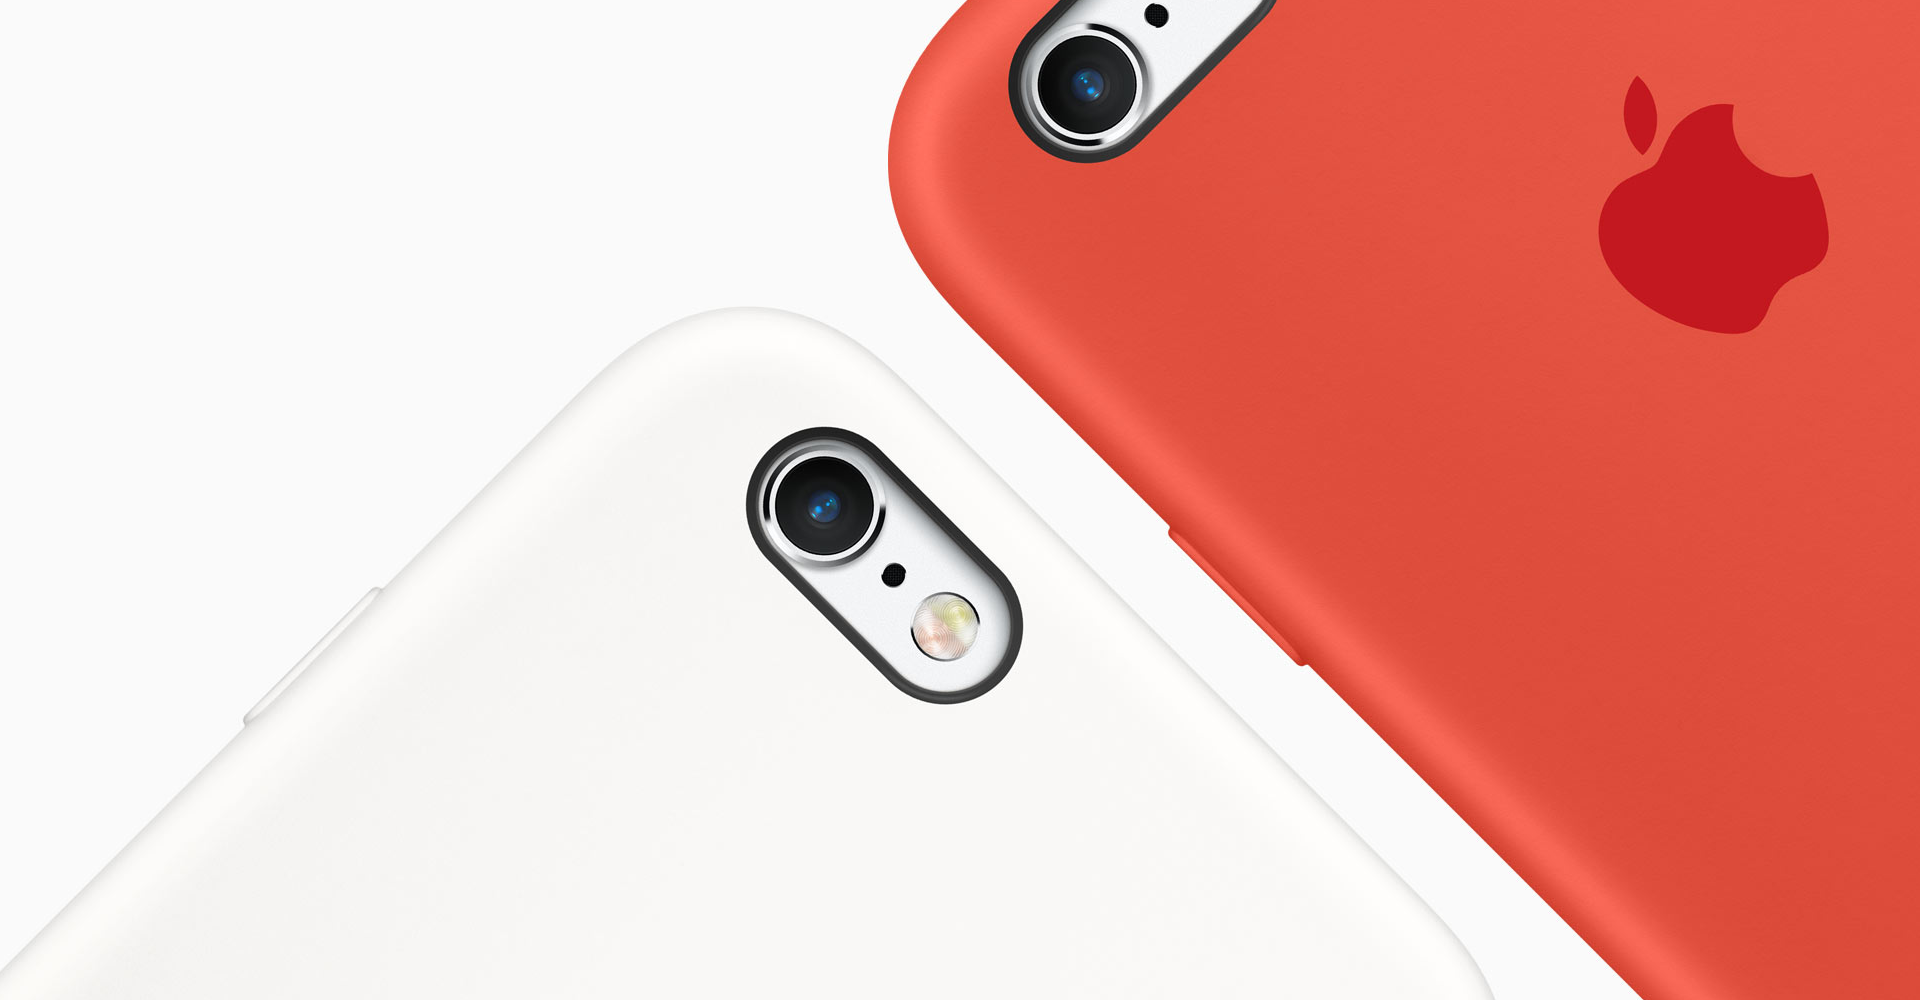 【iPhone6s/6sPlus】3D Touchの色々な 使い方